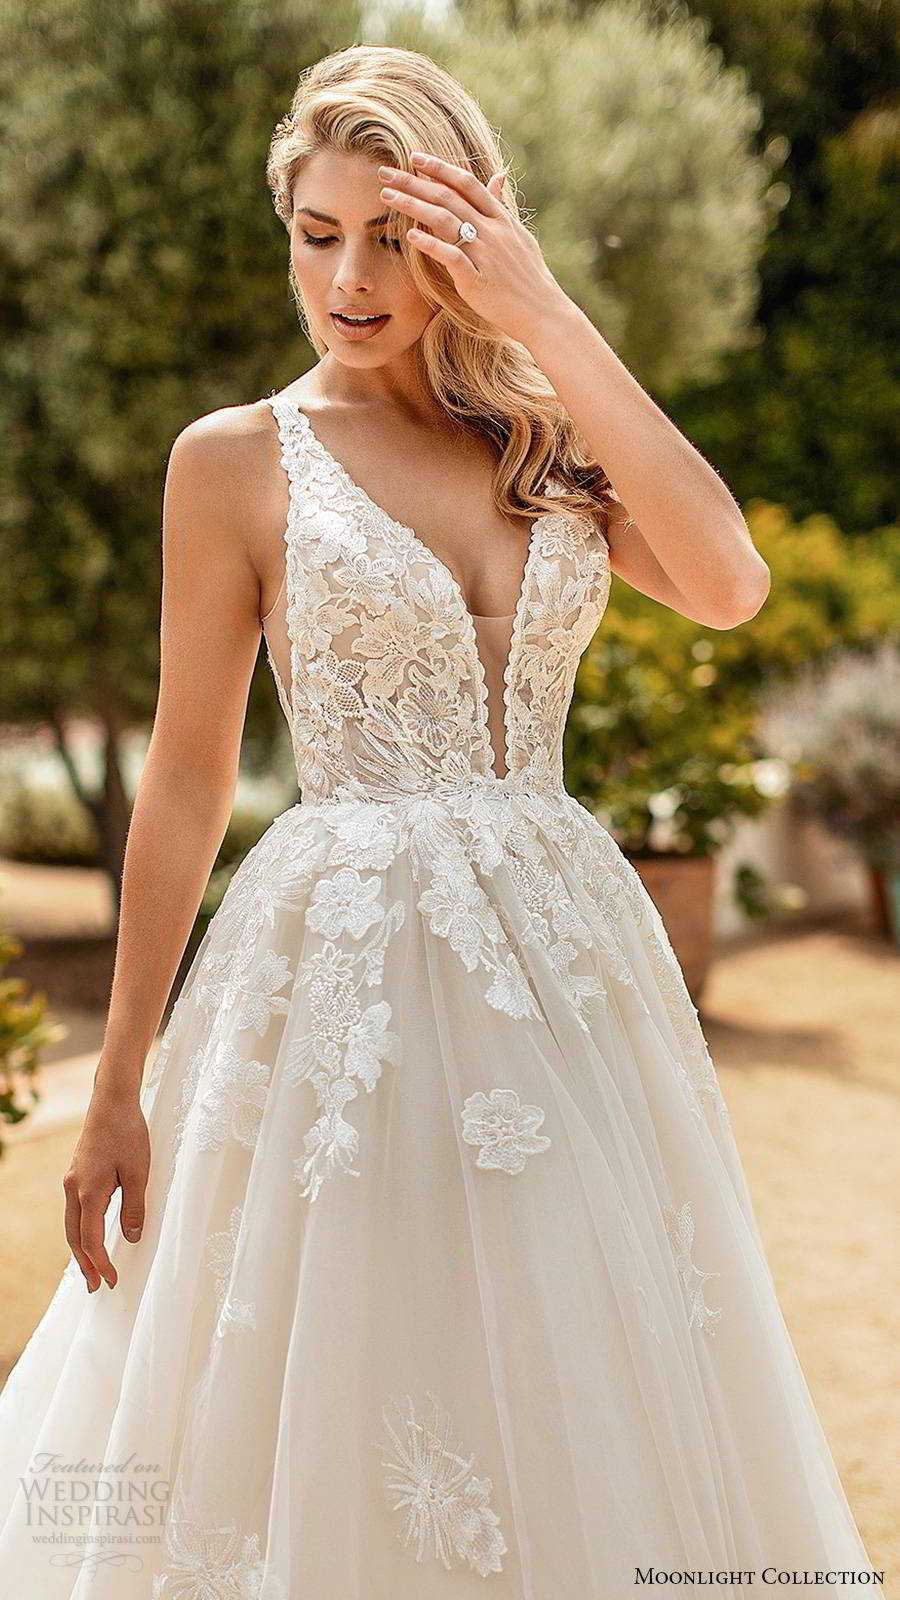 moonlight collection spring 2020 bridal sleevess thick straps plunging v neckline embellished bodice princess ball gown wedding dress v back chapel train (6) zv